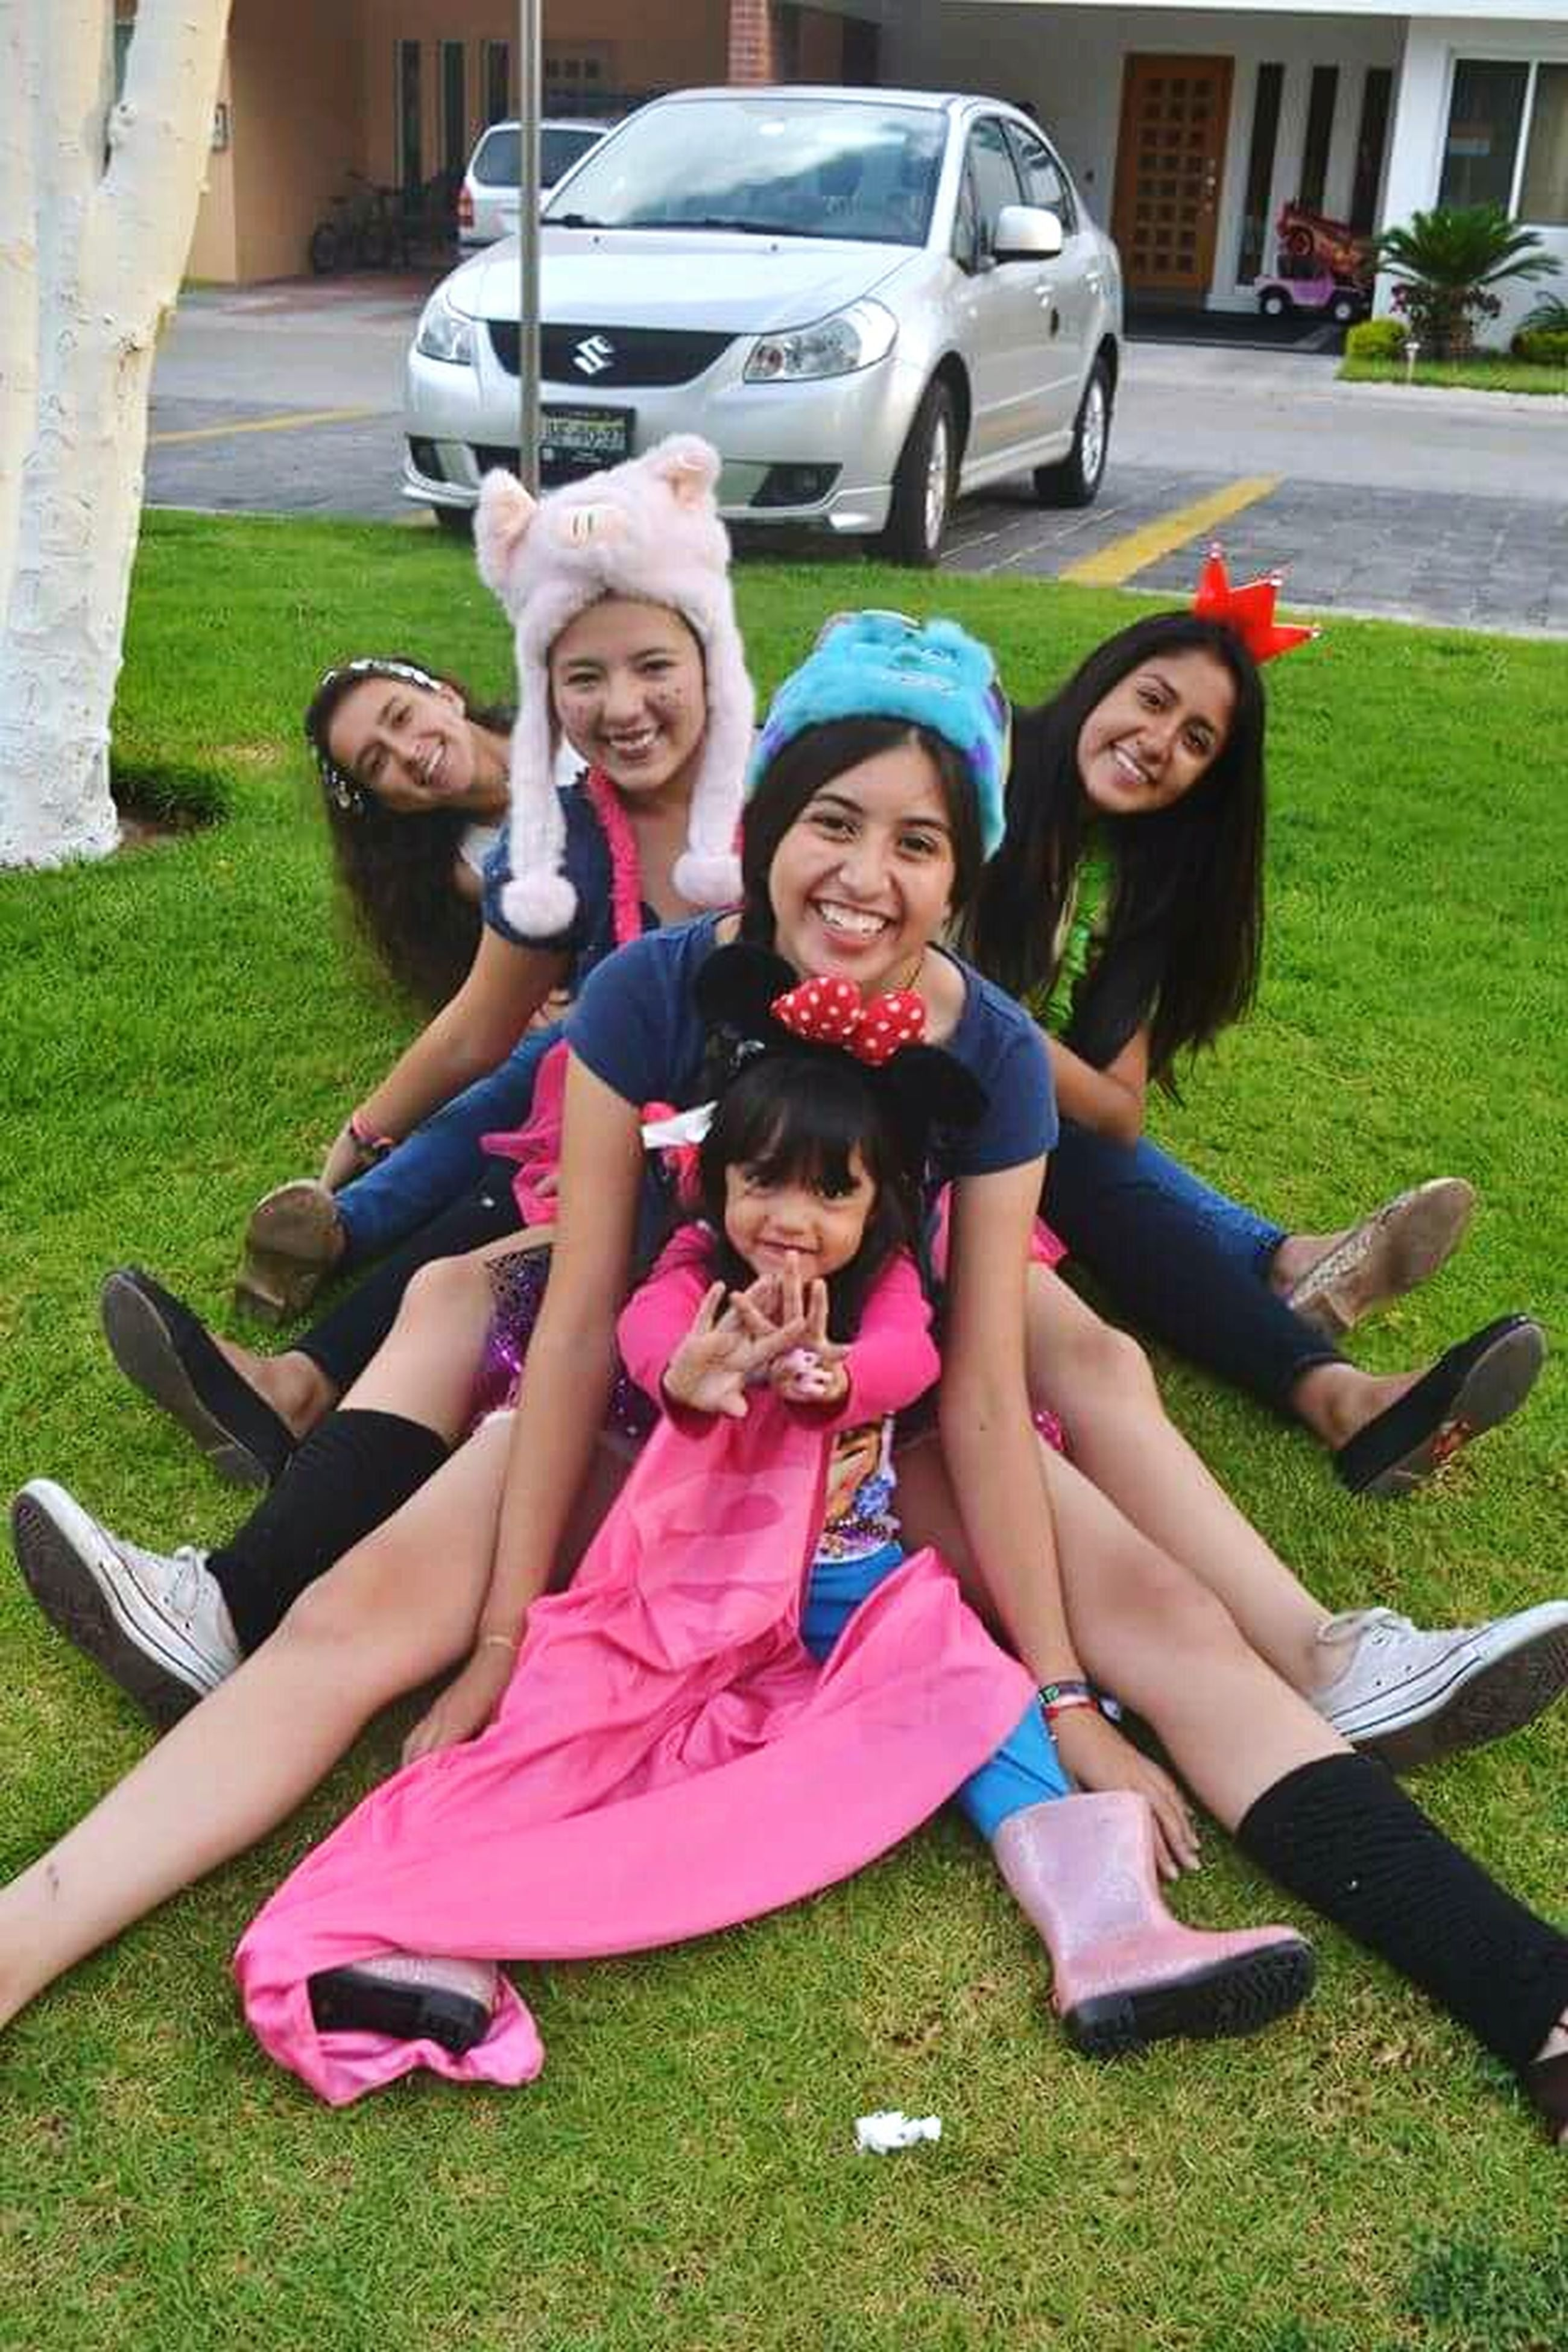 person, lifestyles, leisure activity, grass, childhood, casual clothing, happiness, elementary age, sitting, full length, fun, smiling, girls, park - man made space, togetherness, enjoyment, looking at camera, playing